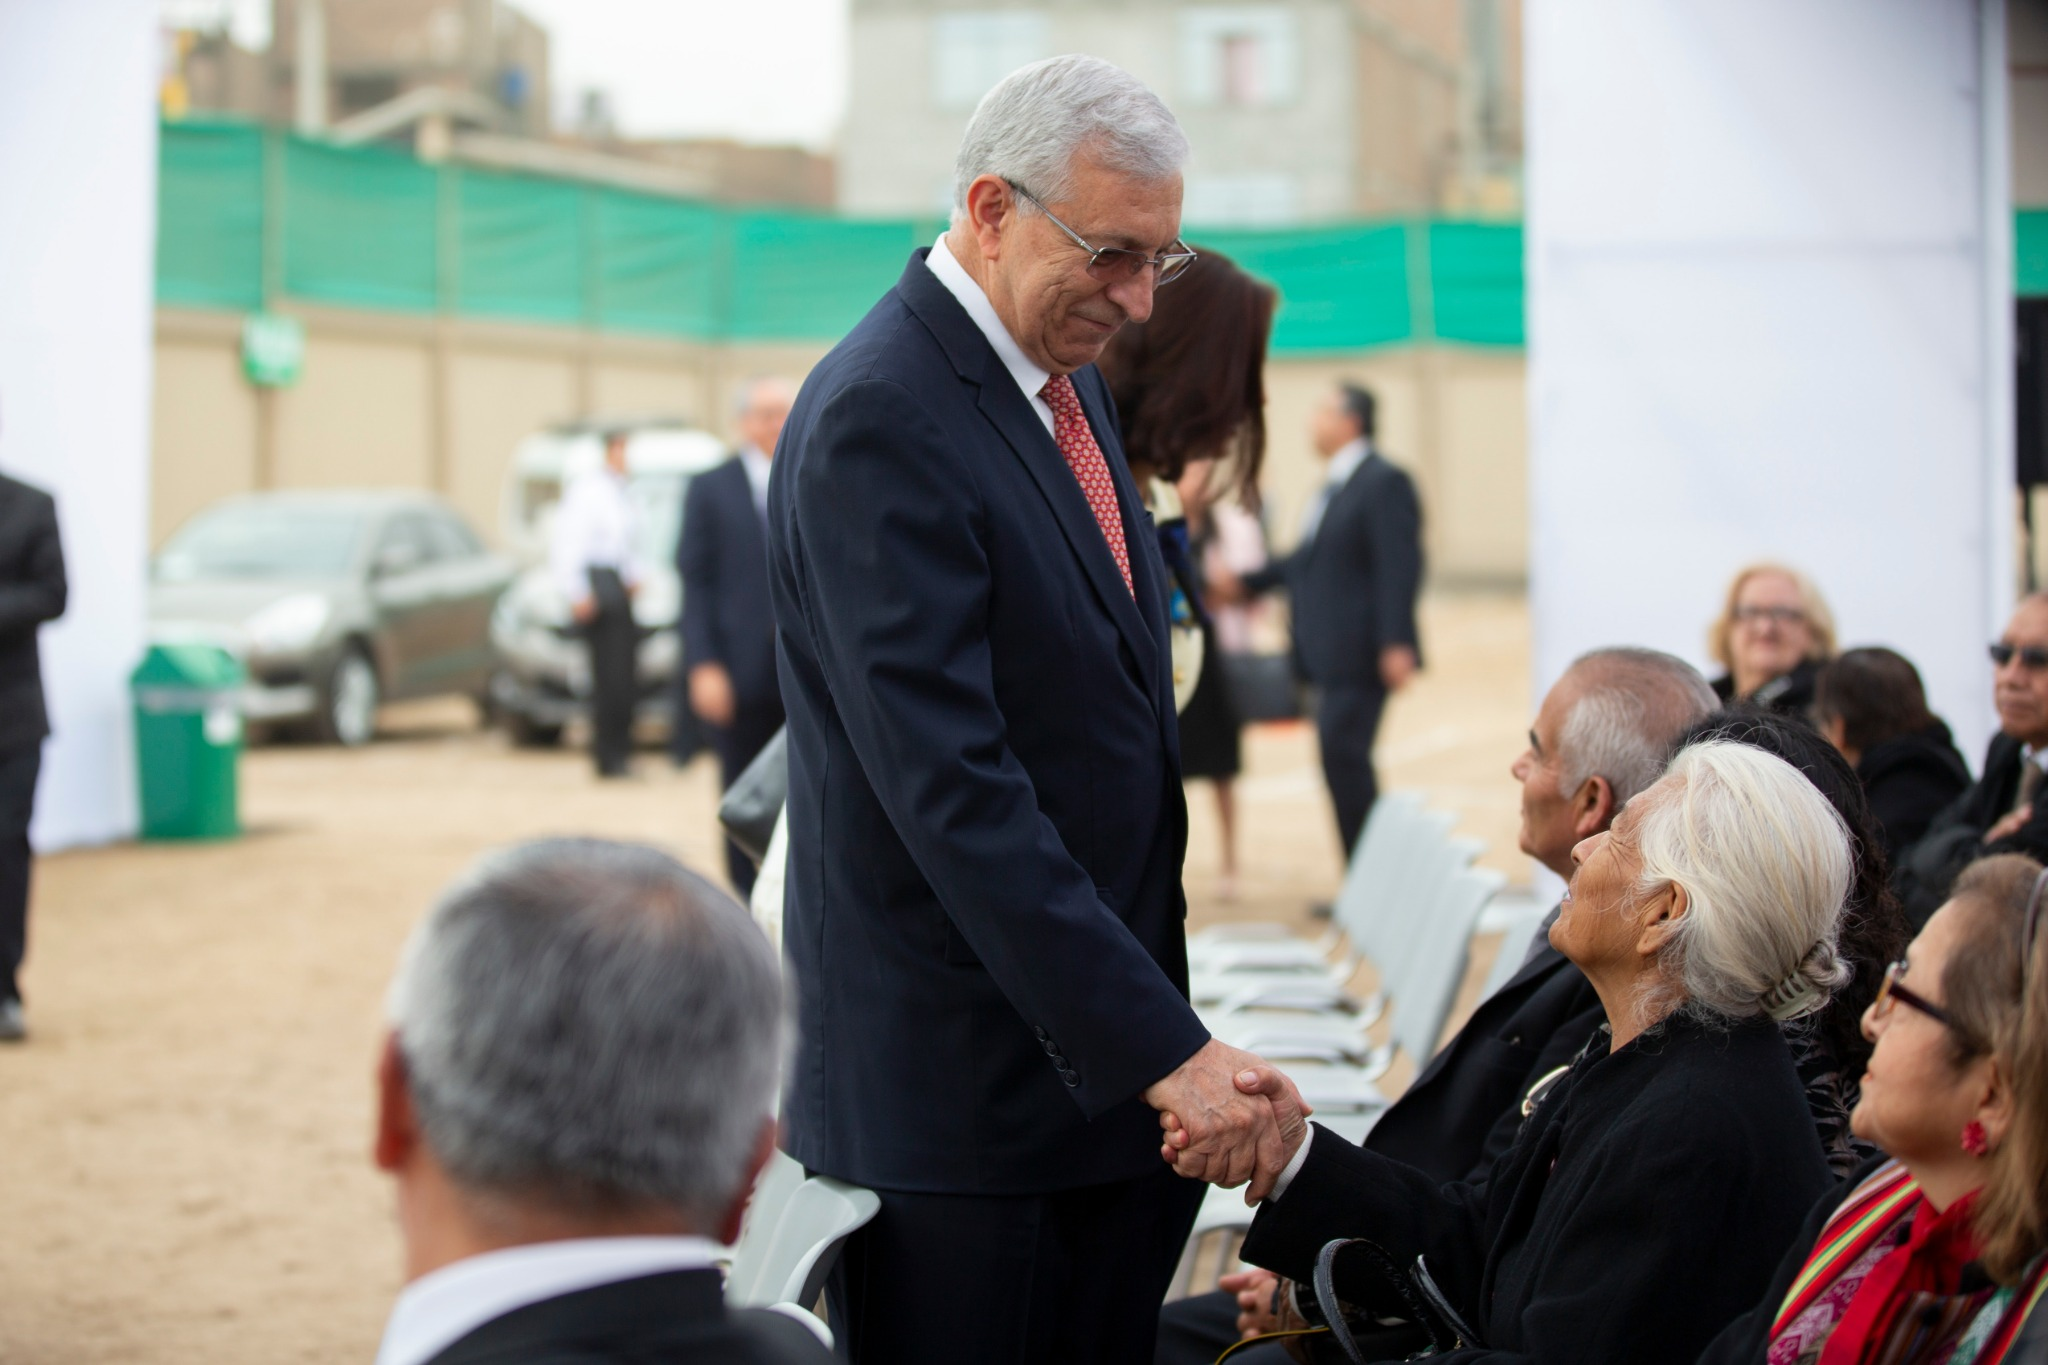 Elder Enrique R. Falabella, a General Authority Seventy and president of the South America Northwest Area, welcomes Latter-day Saints attending the groundbreaking ceremony of the Lima Peru Olivos Temple on Saturday, June 8, 2019.